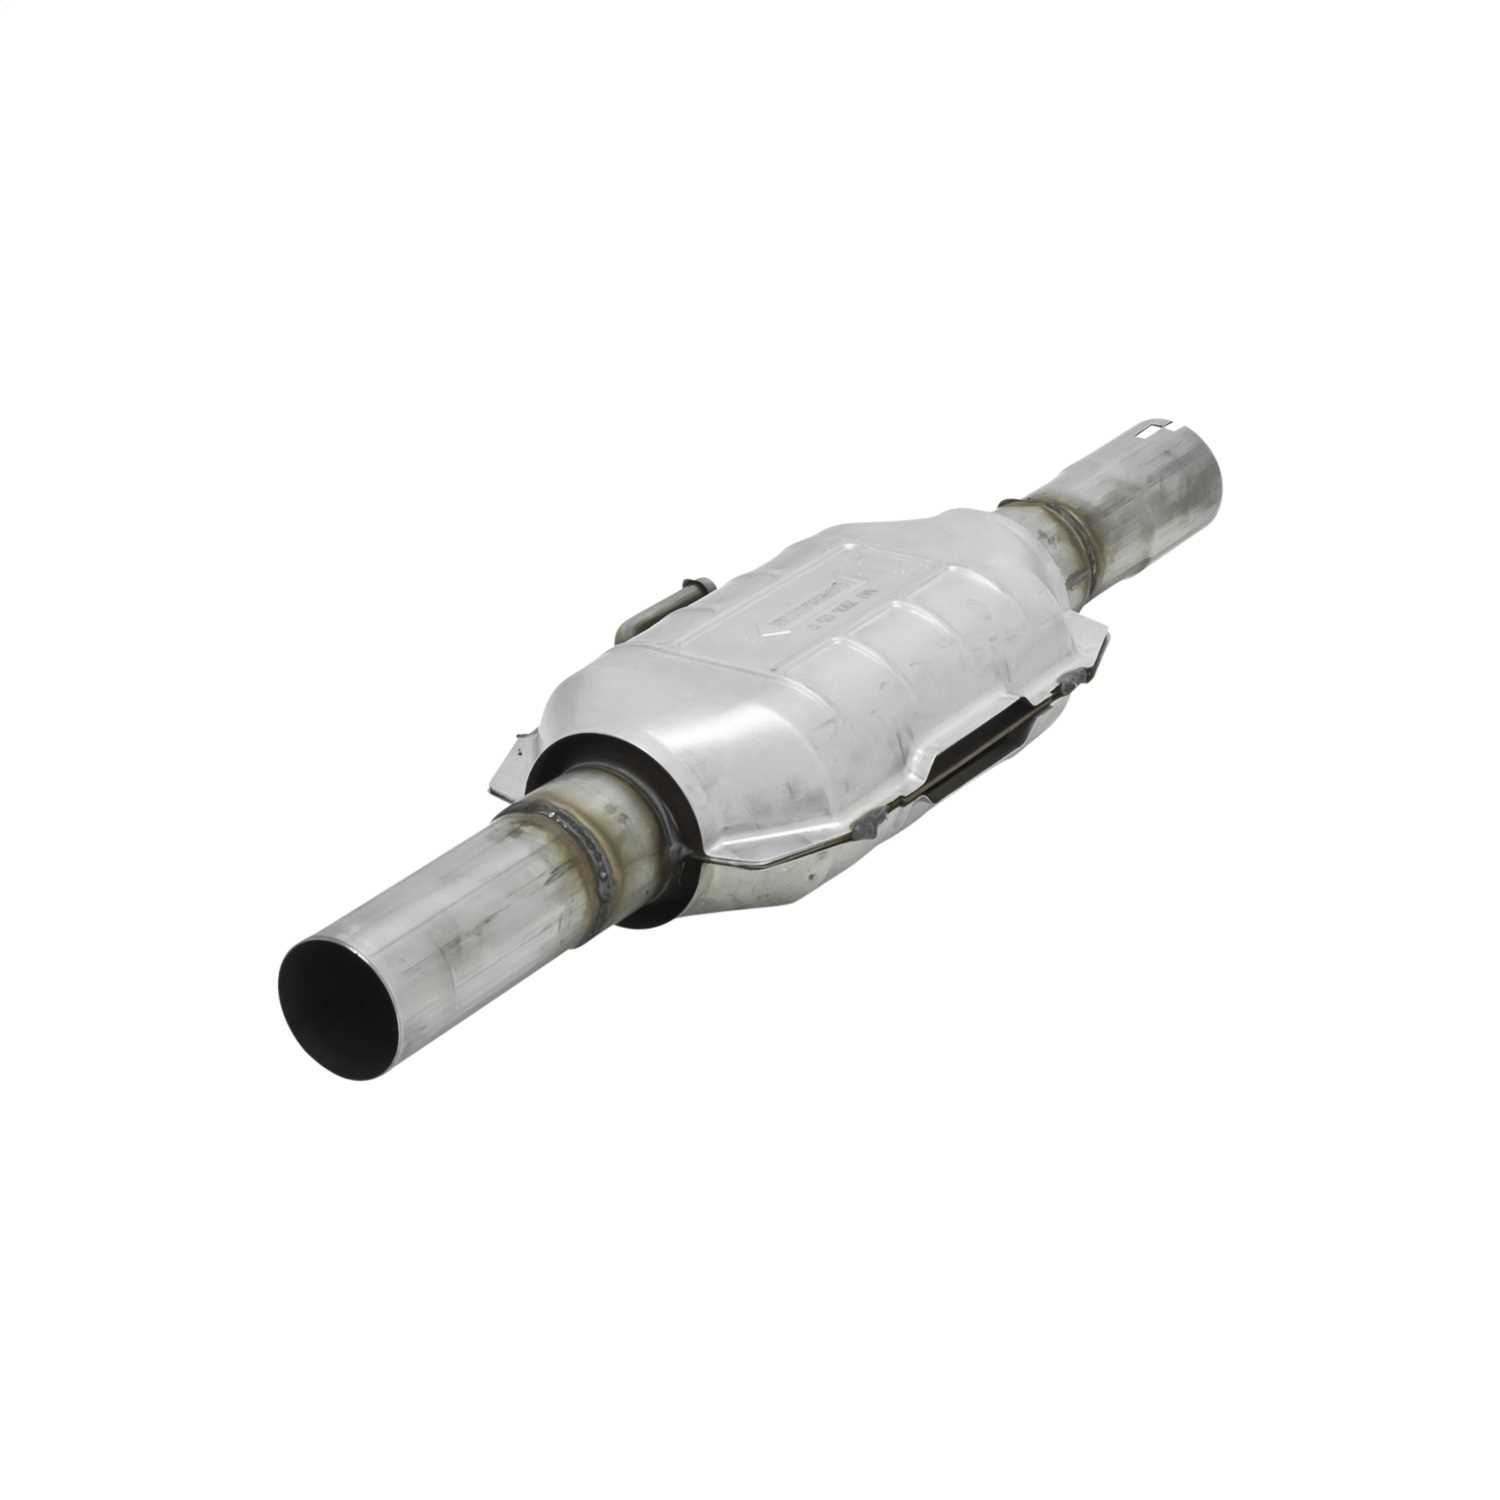 2010029 Flowmaster 49 State Catalytic Converters Direct Fit Catalytic Converter